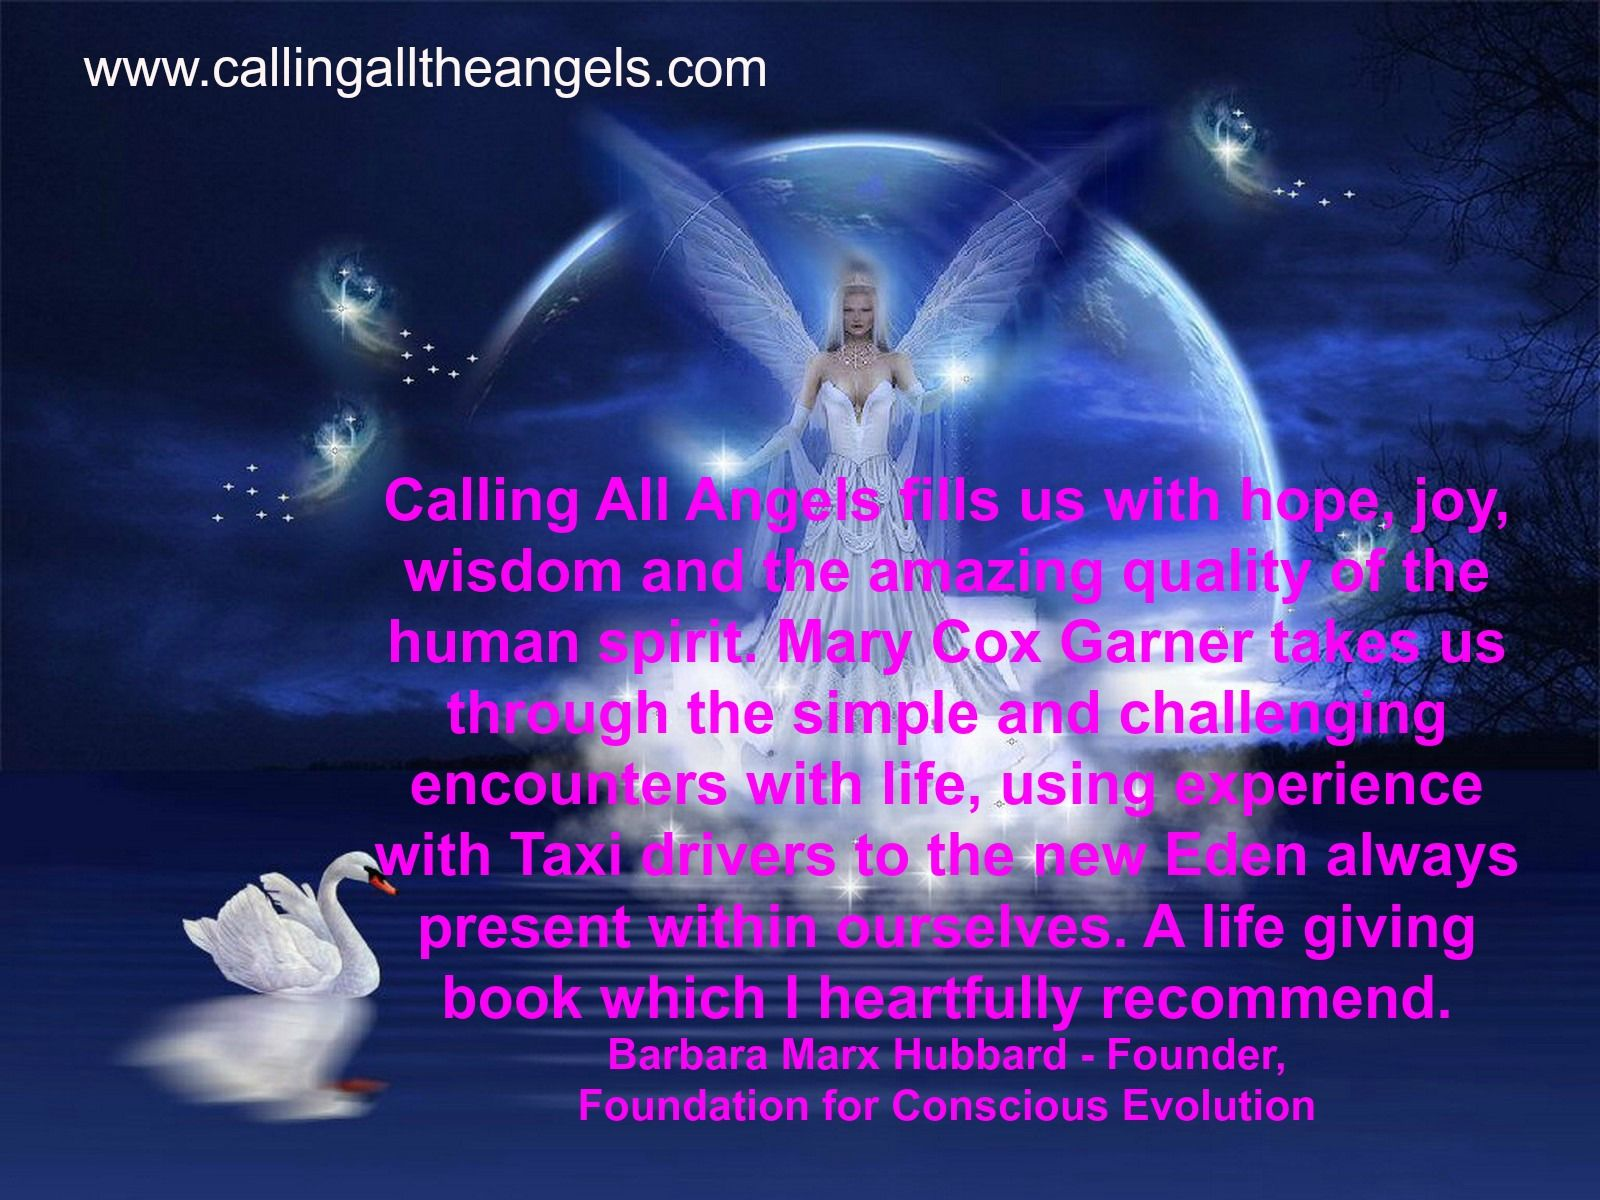 Thanks to Barbara Marx Hubbard for your kind remarks about CallingalltheAngels.com